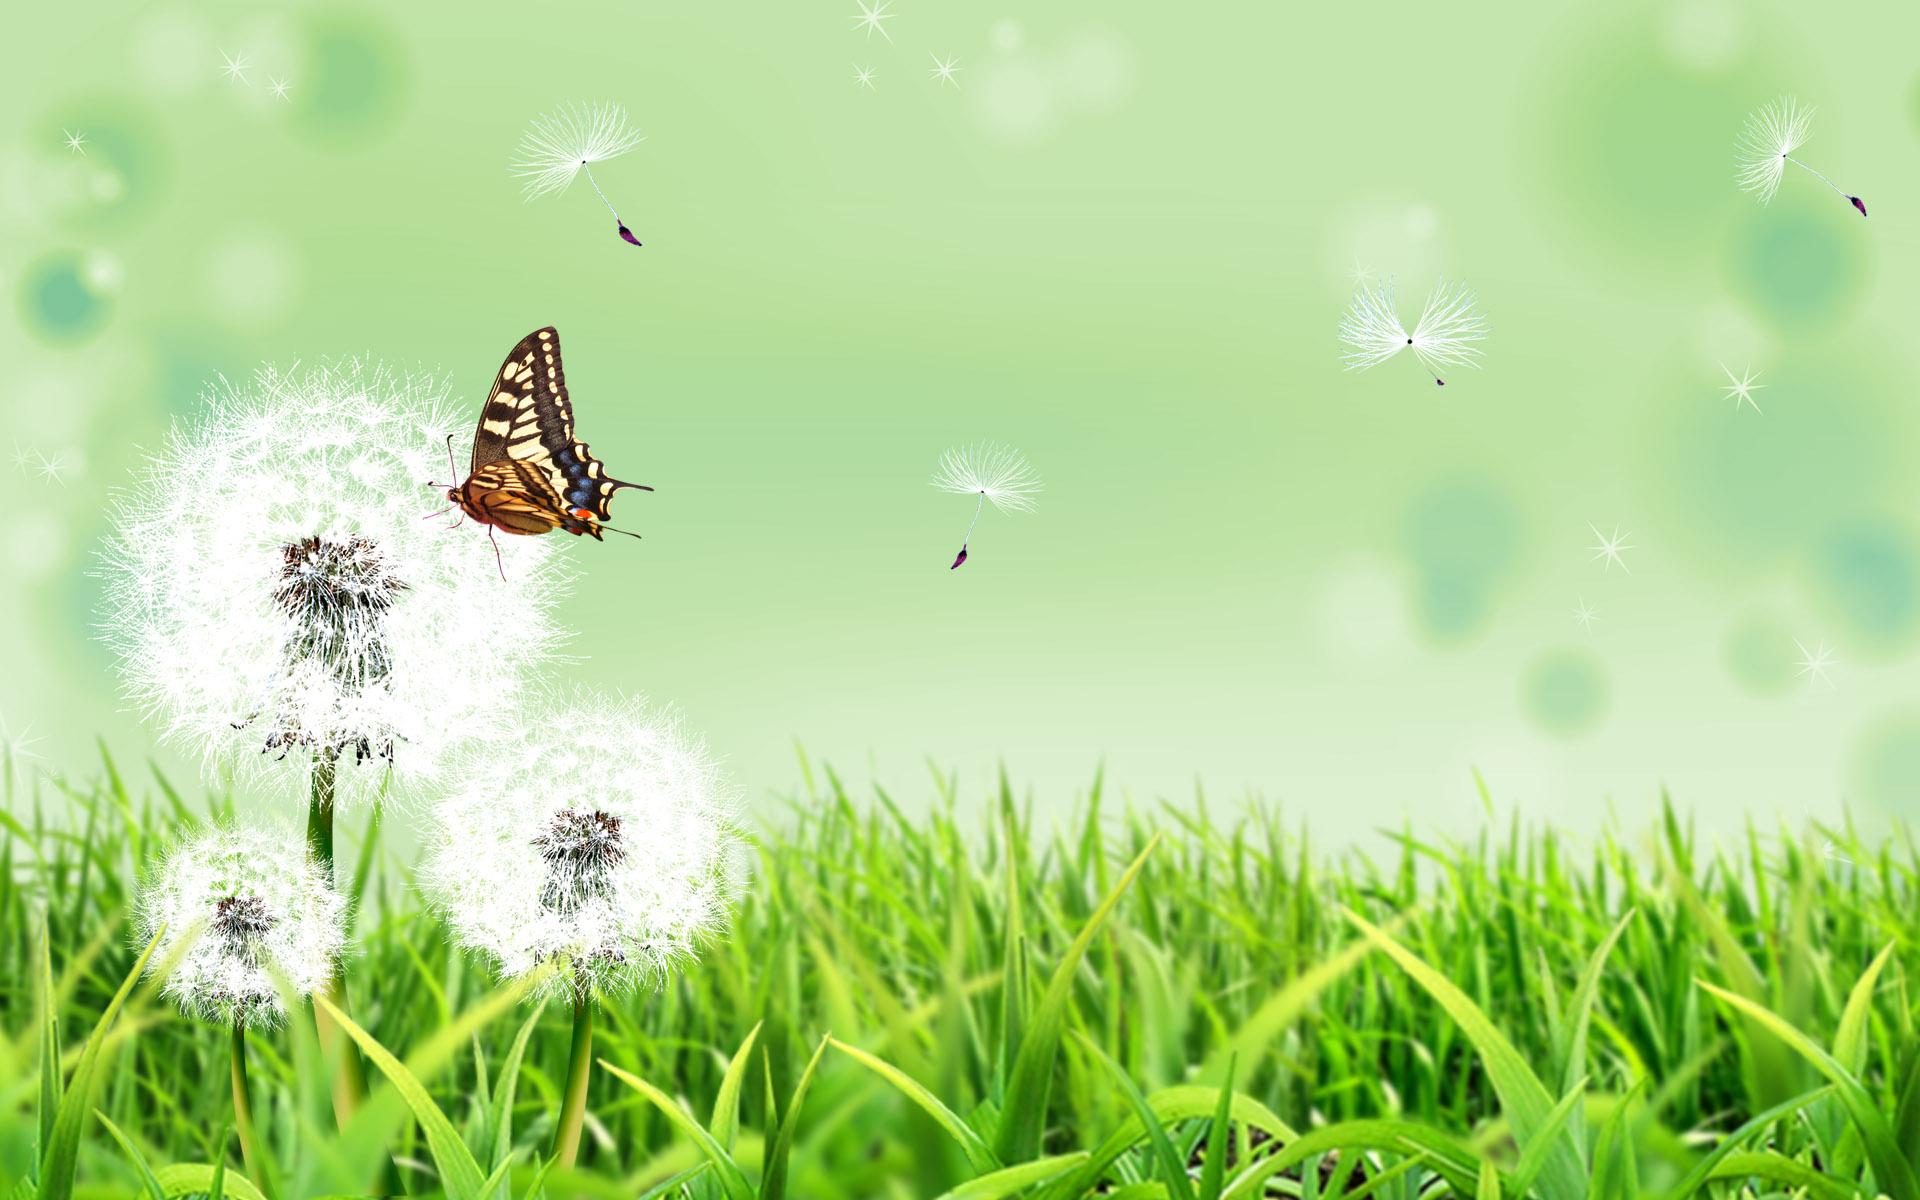 Nature Wallpaper Designs butterfly nature